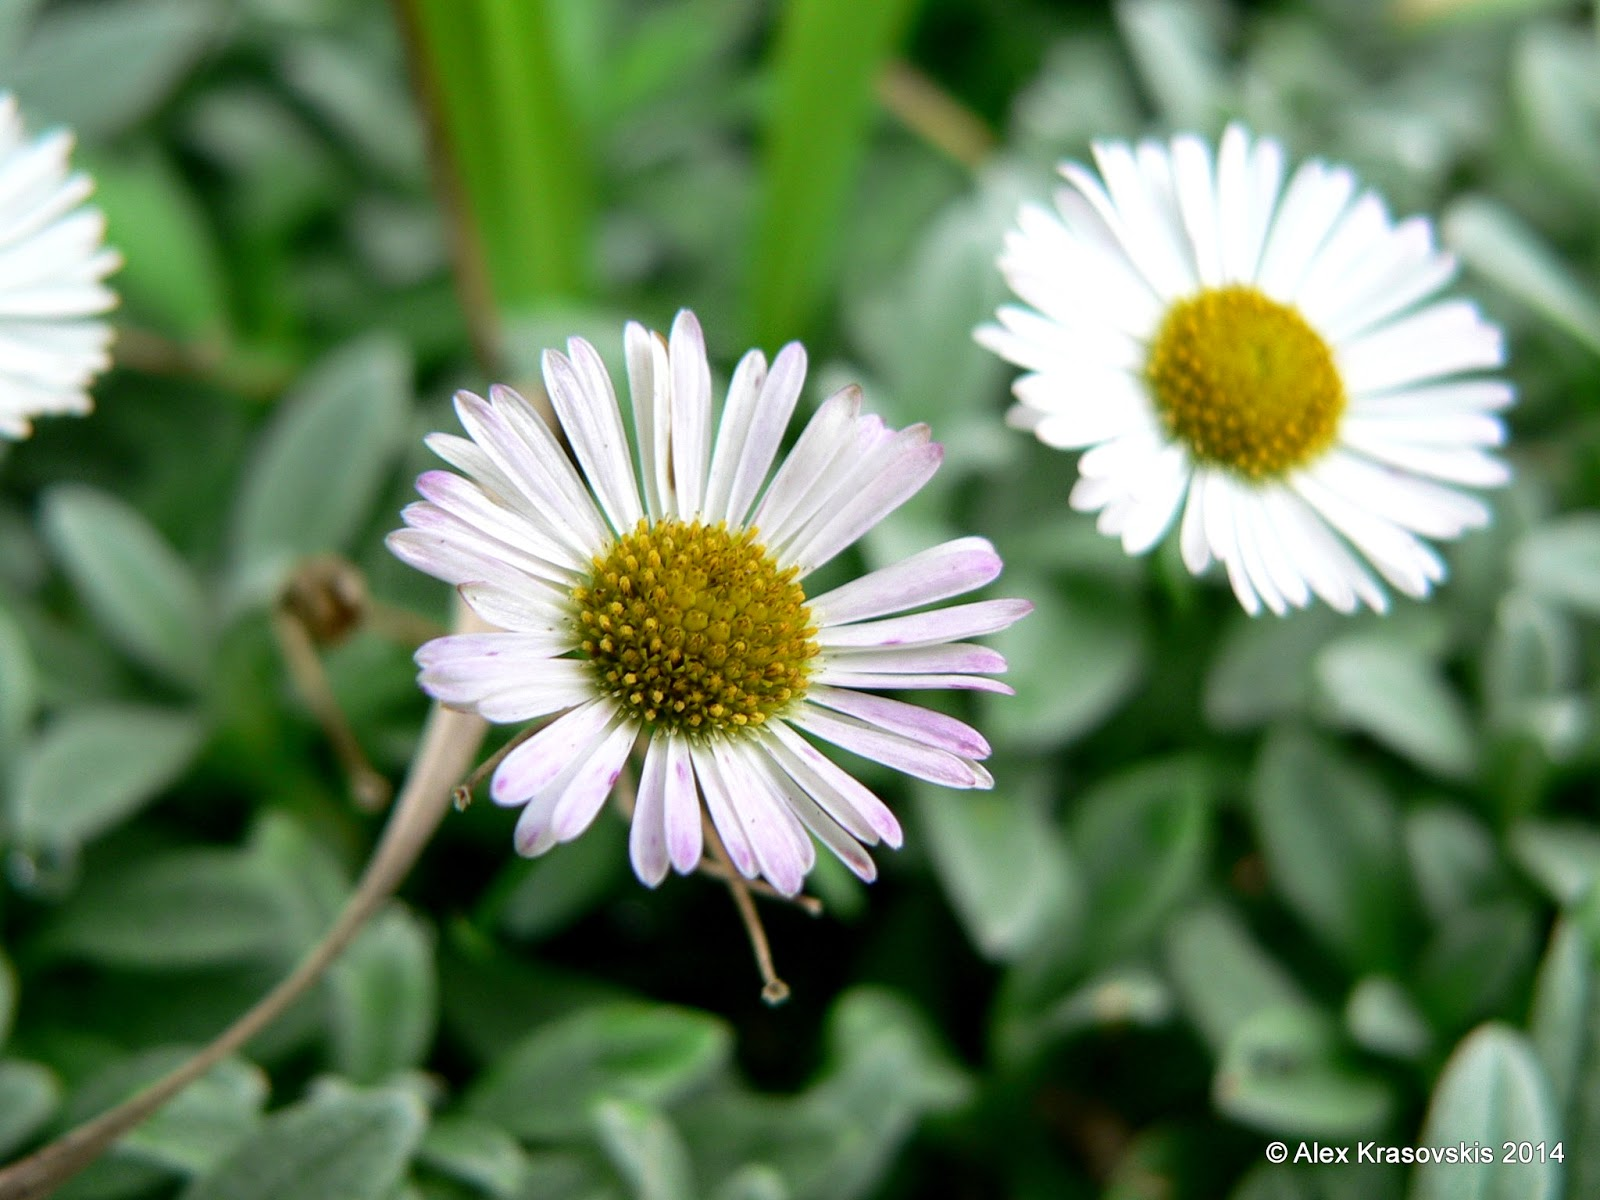 Aggregata plants gardens erigeron karvinskianus aka seaside daisy here they are having no trouble covering the soil under an established hakea tree in my garden in macedon keep in mind this picture was taken in winter and izmirmasajfo